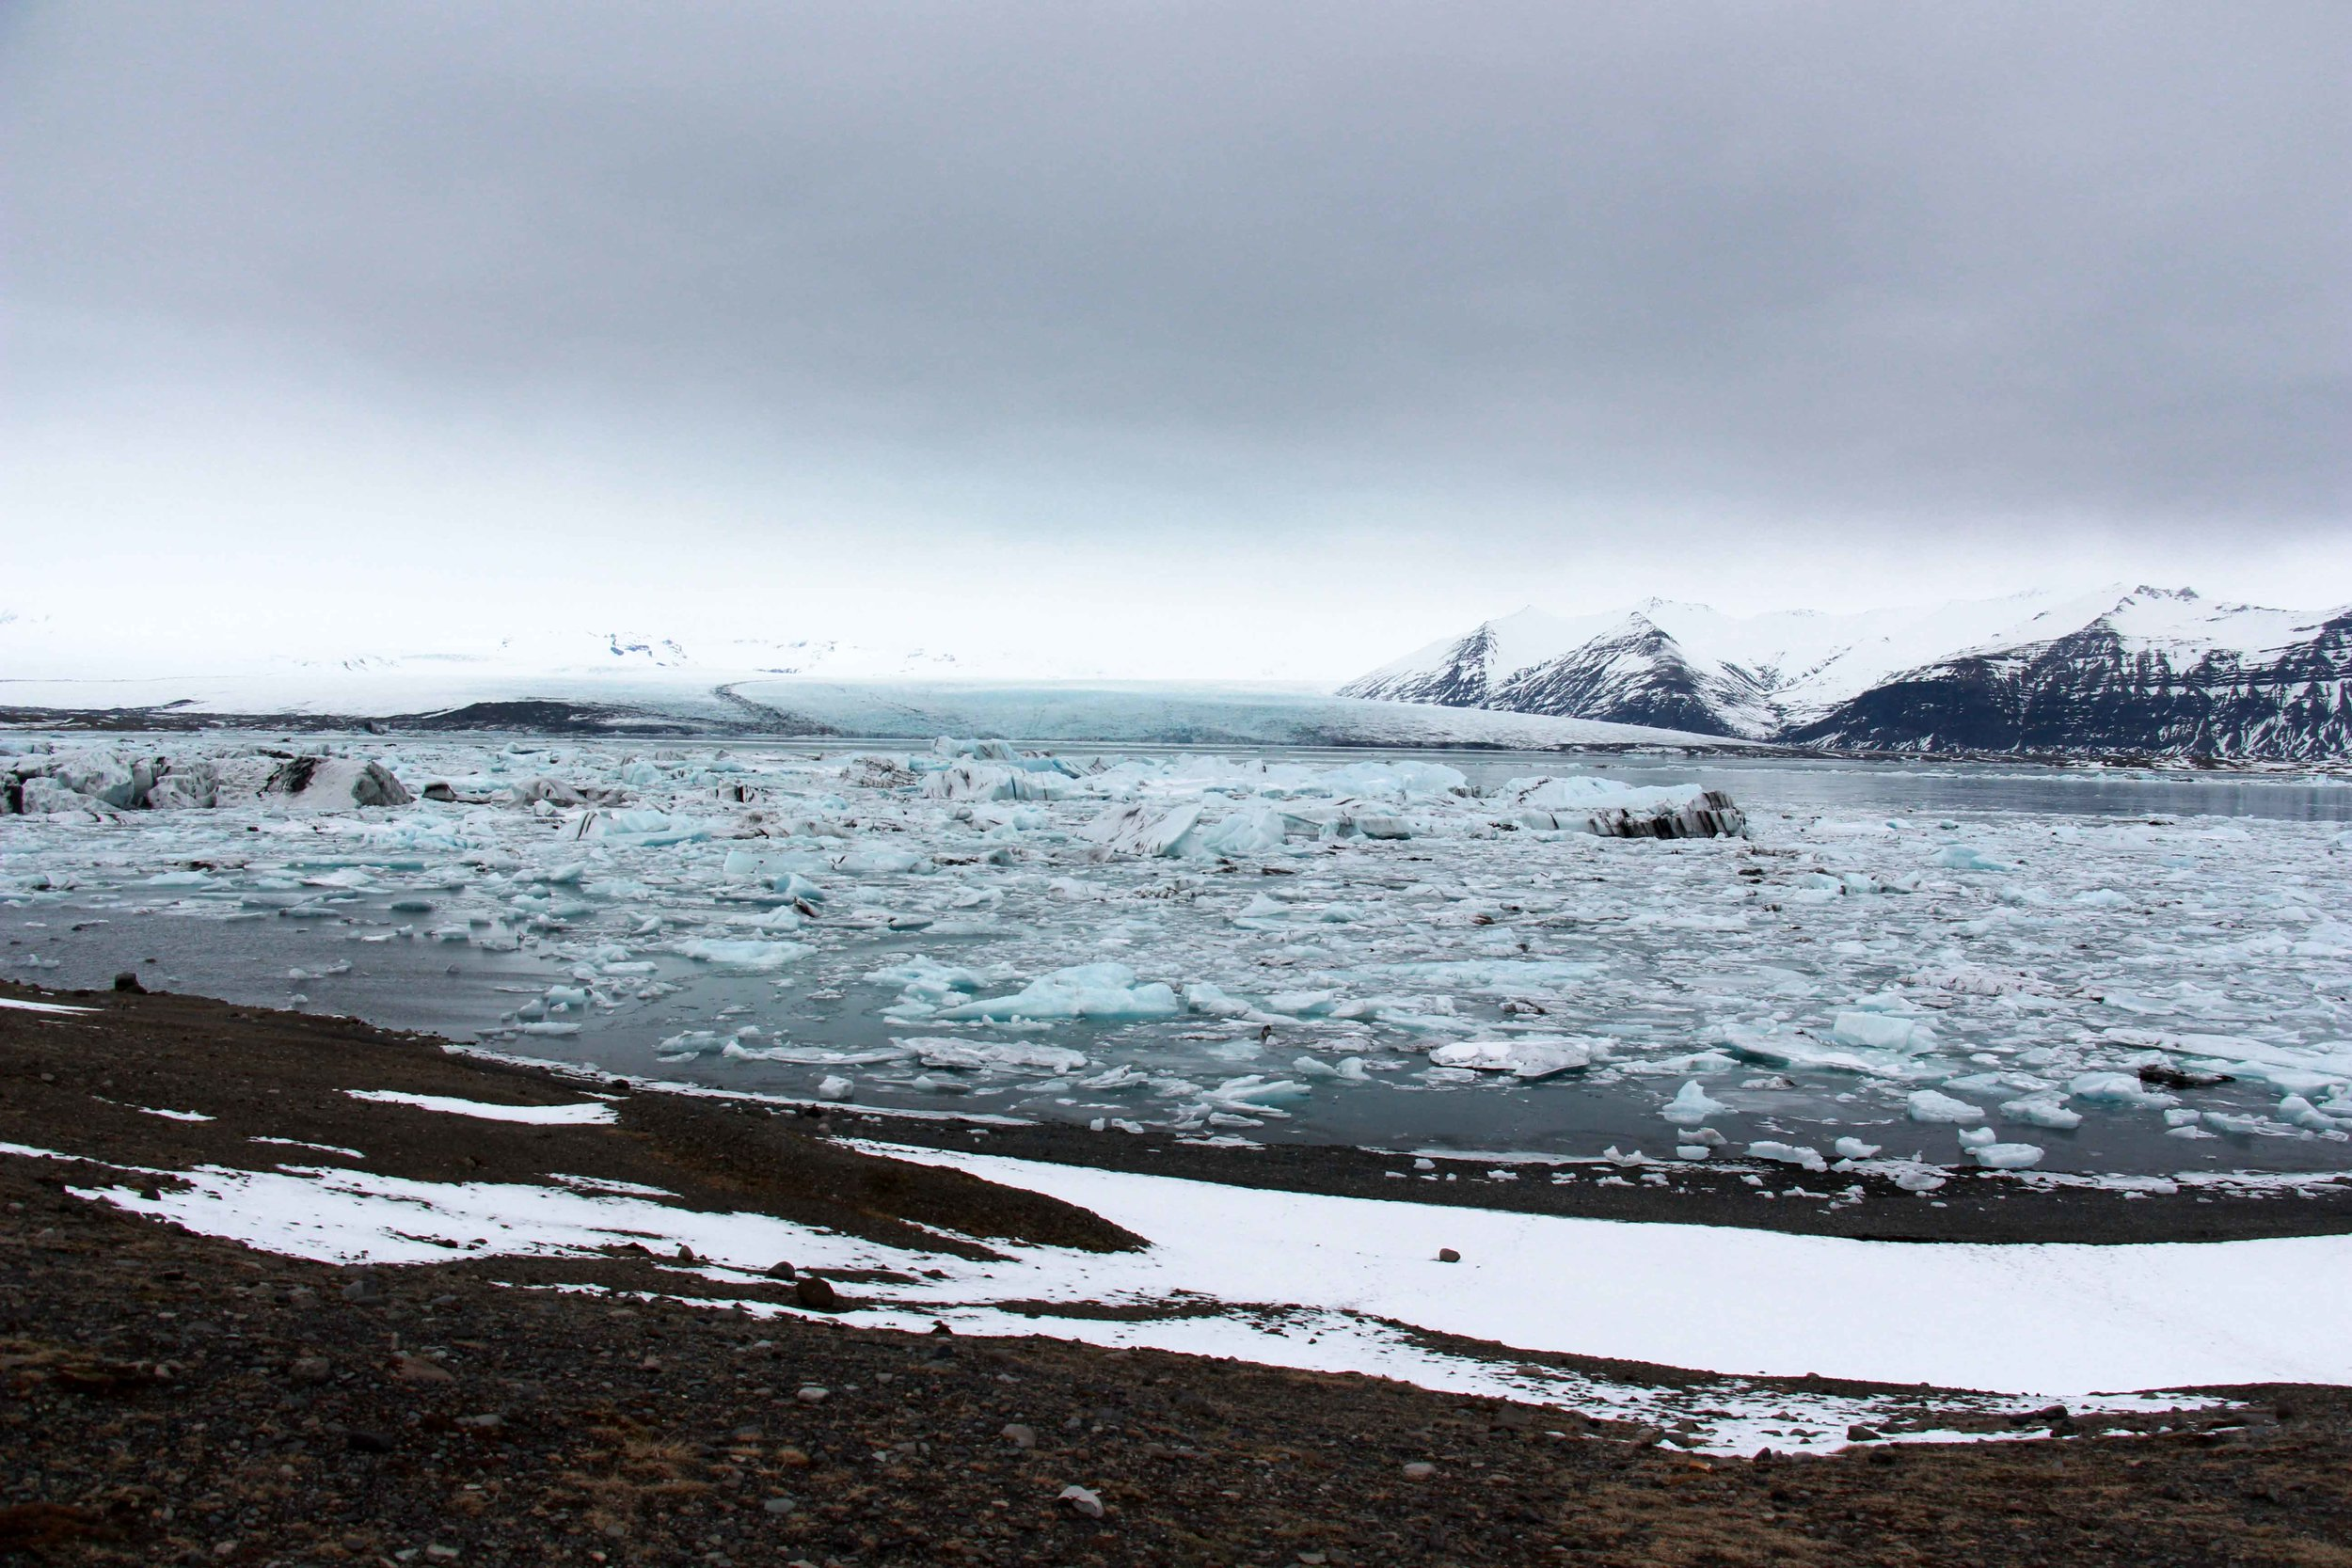 You can walk to the start of the Jökulsárlón glacial lagoon from the roadside